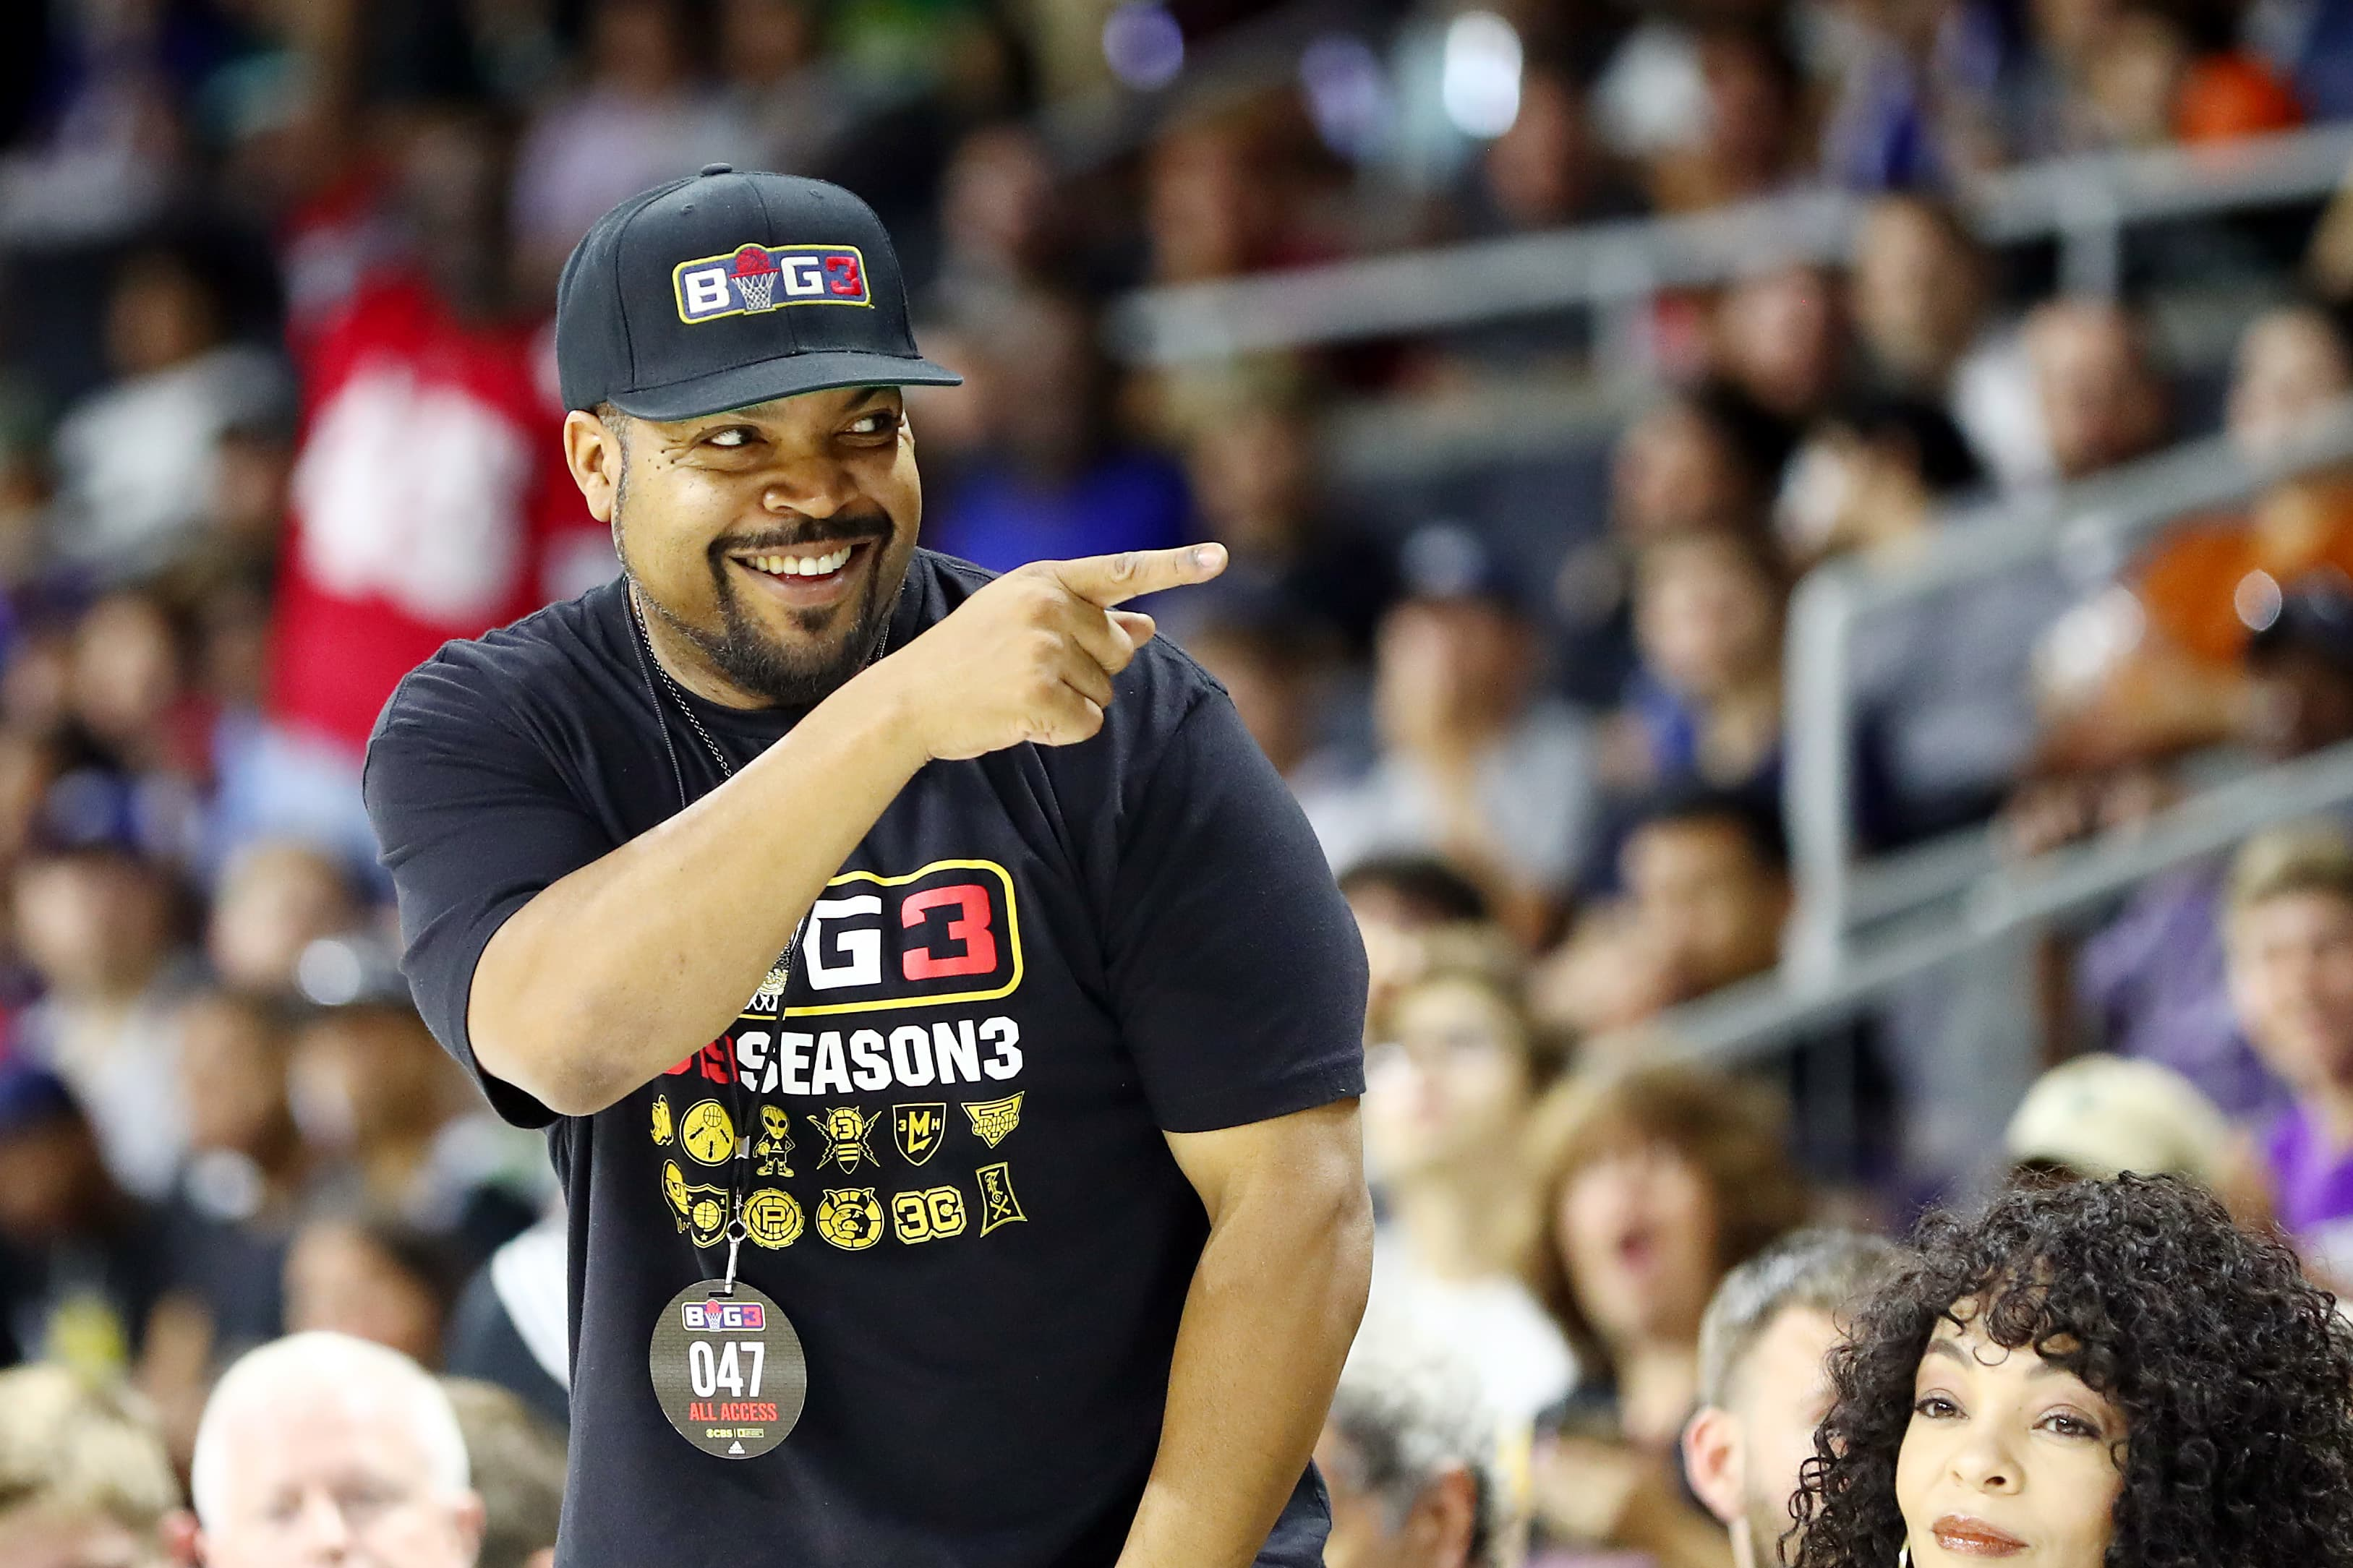 Sports money: 1-on-1 with Big3 summer basketball league founder Ice Cube on changes for 2020 season, why he won't 'harass' Kobe Bryant